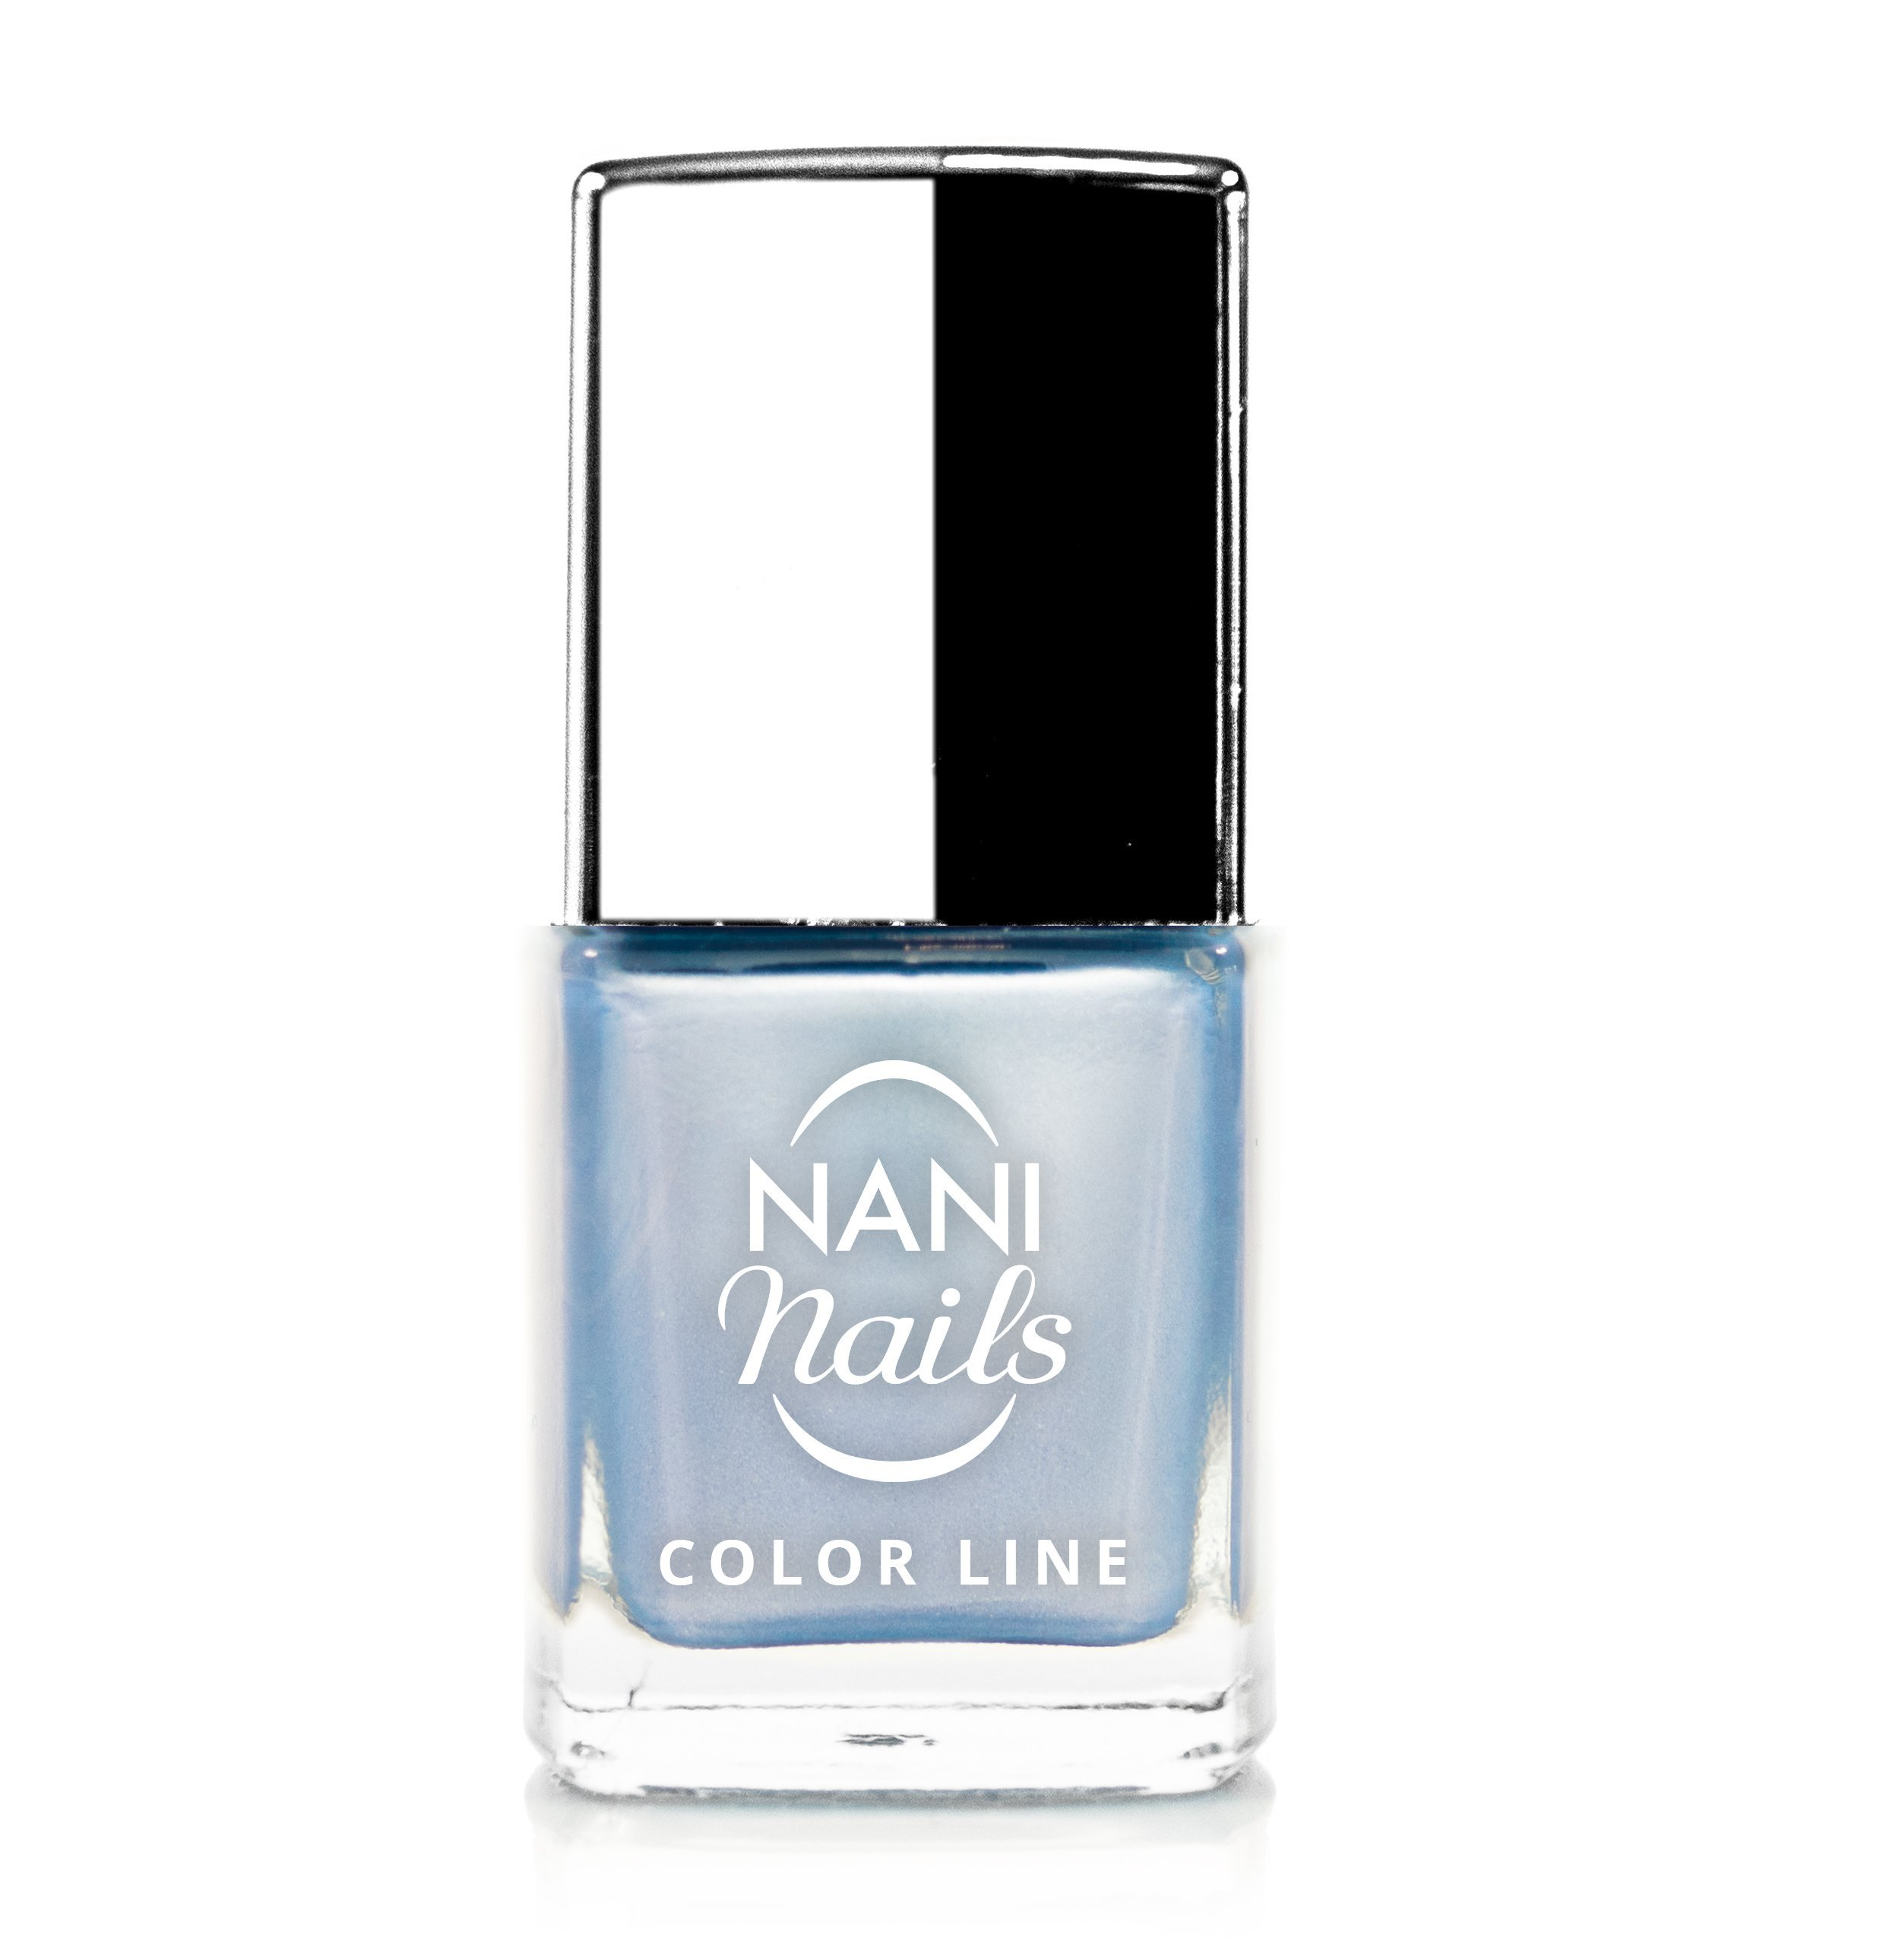 NANI lak Color Line 9 ml - 64